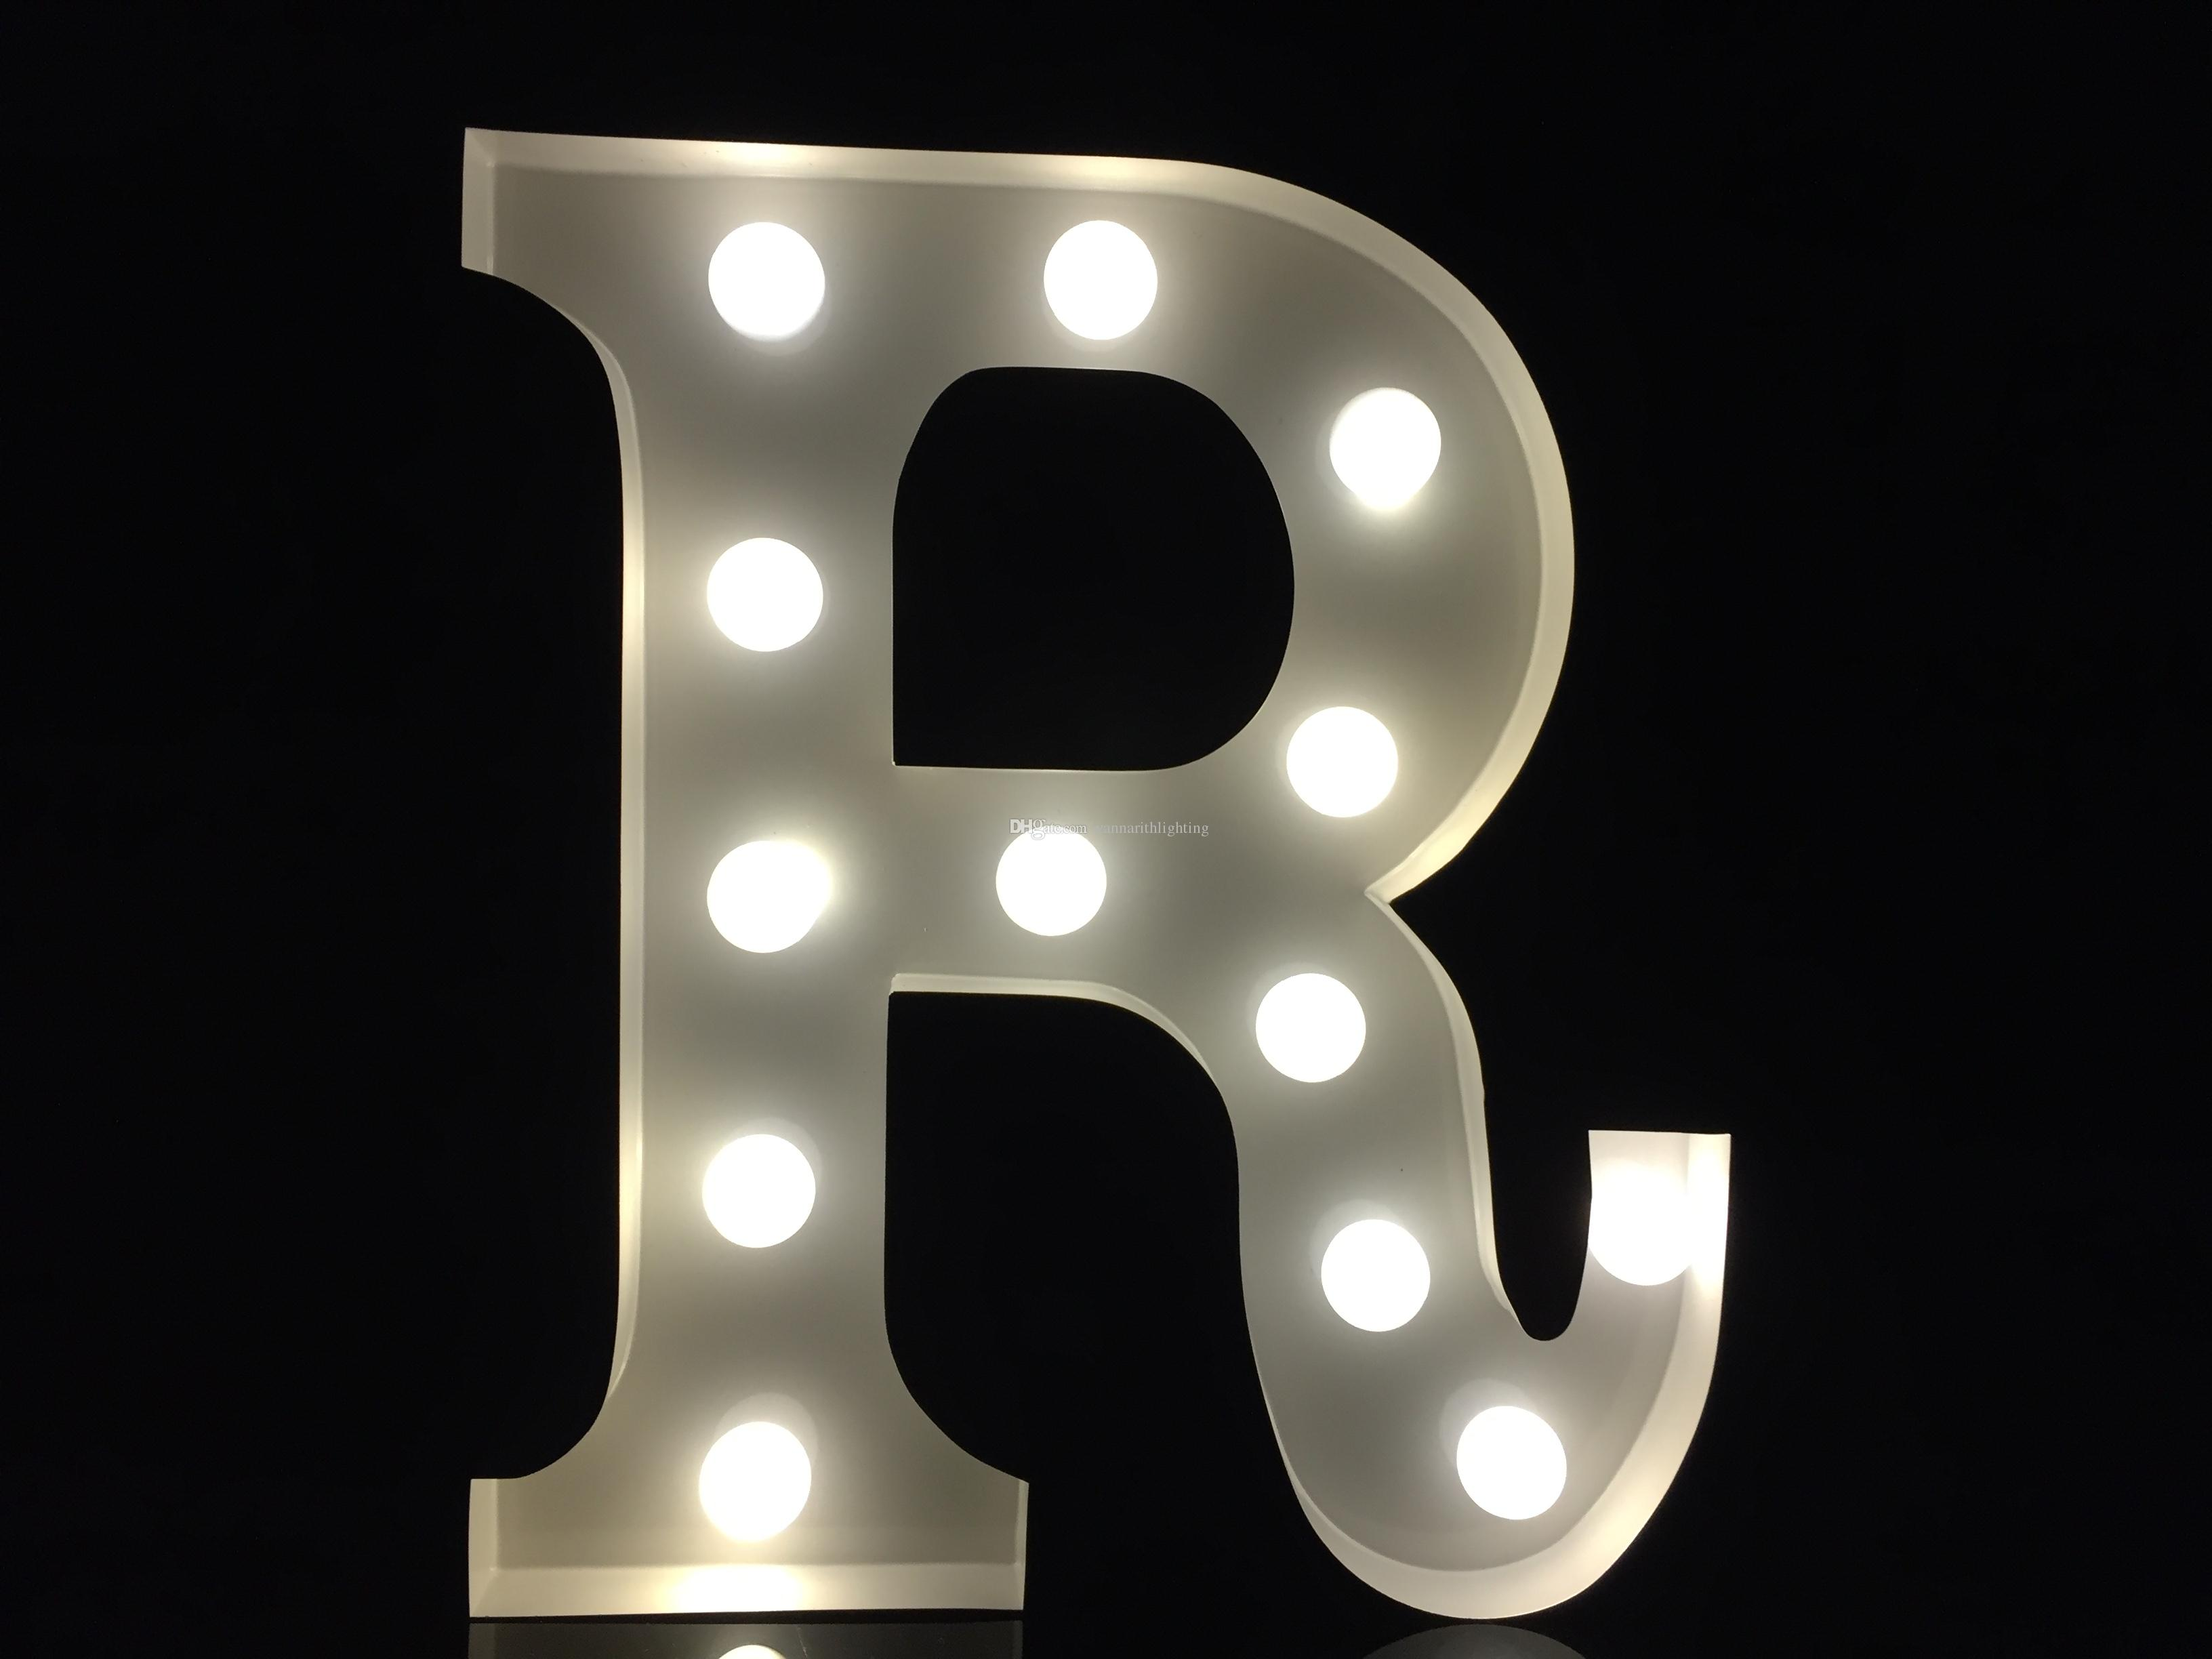 2018 Vintage 9metal White Light Up Letter R Alphabet Letter Light Wedding Decor Home Bedroom